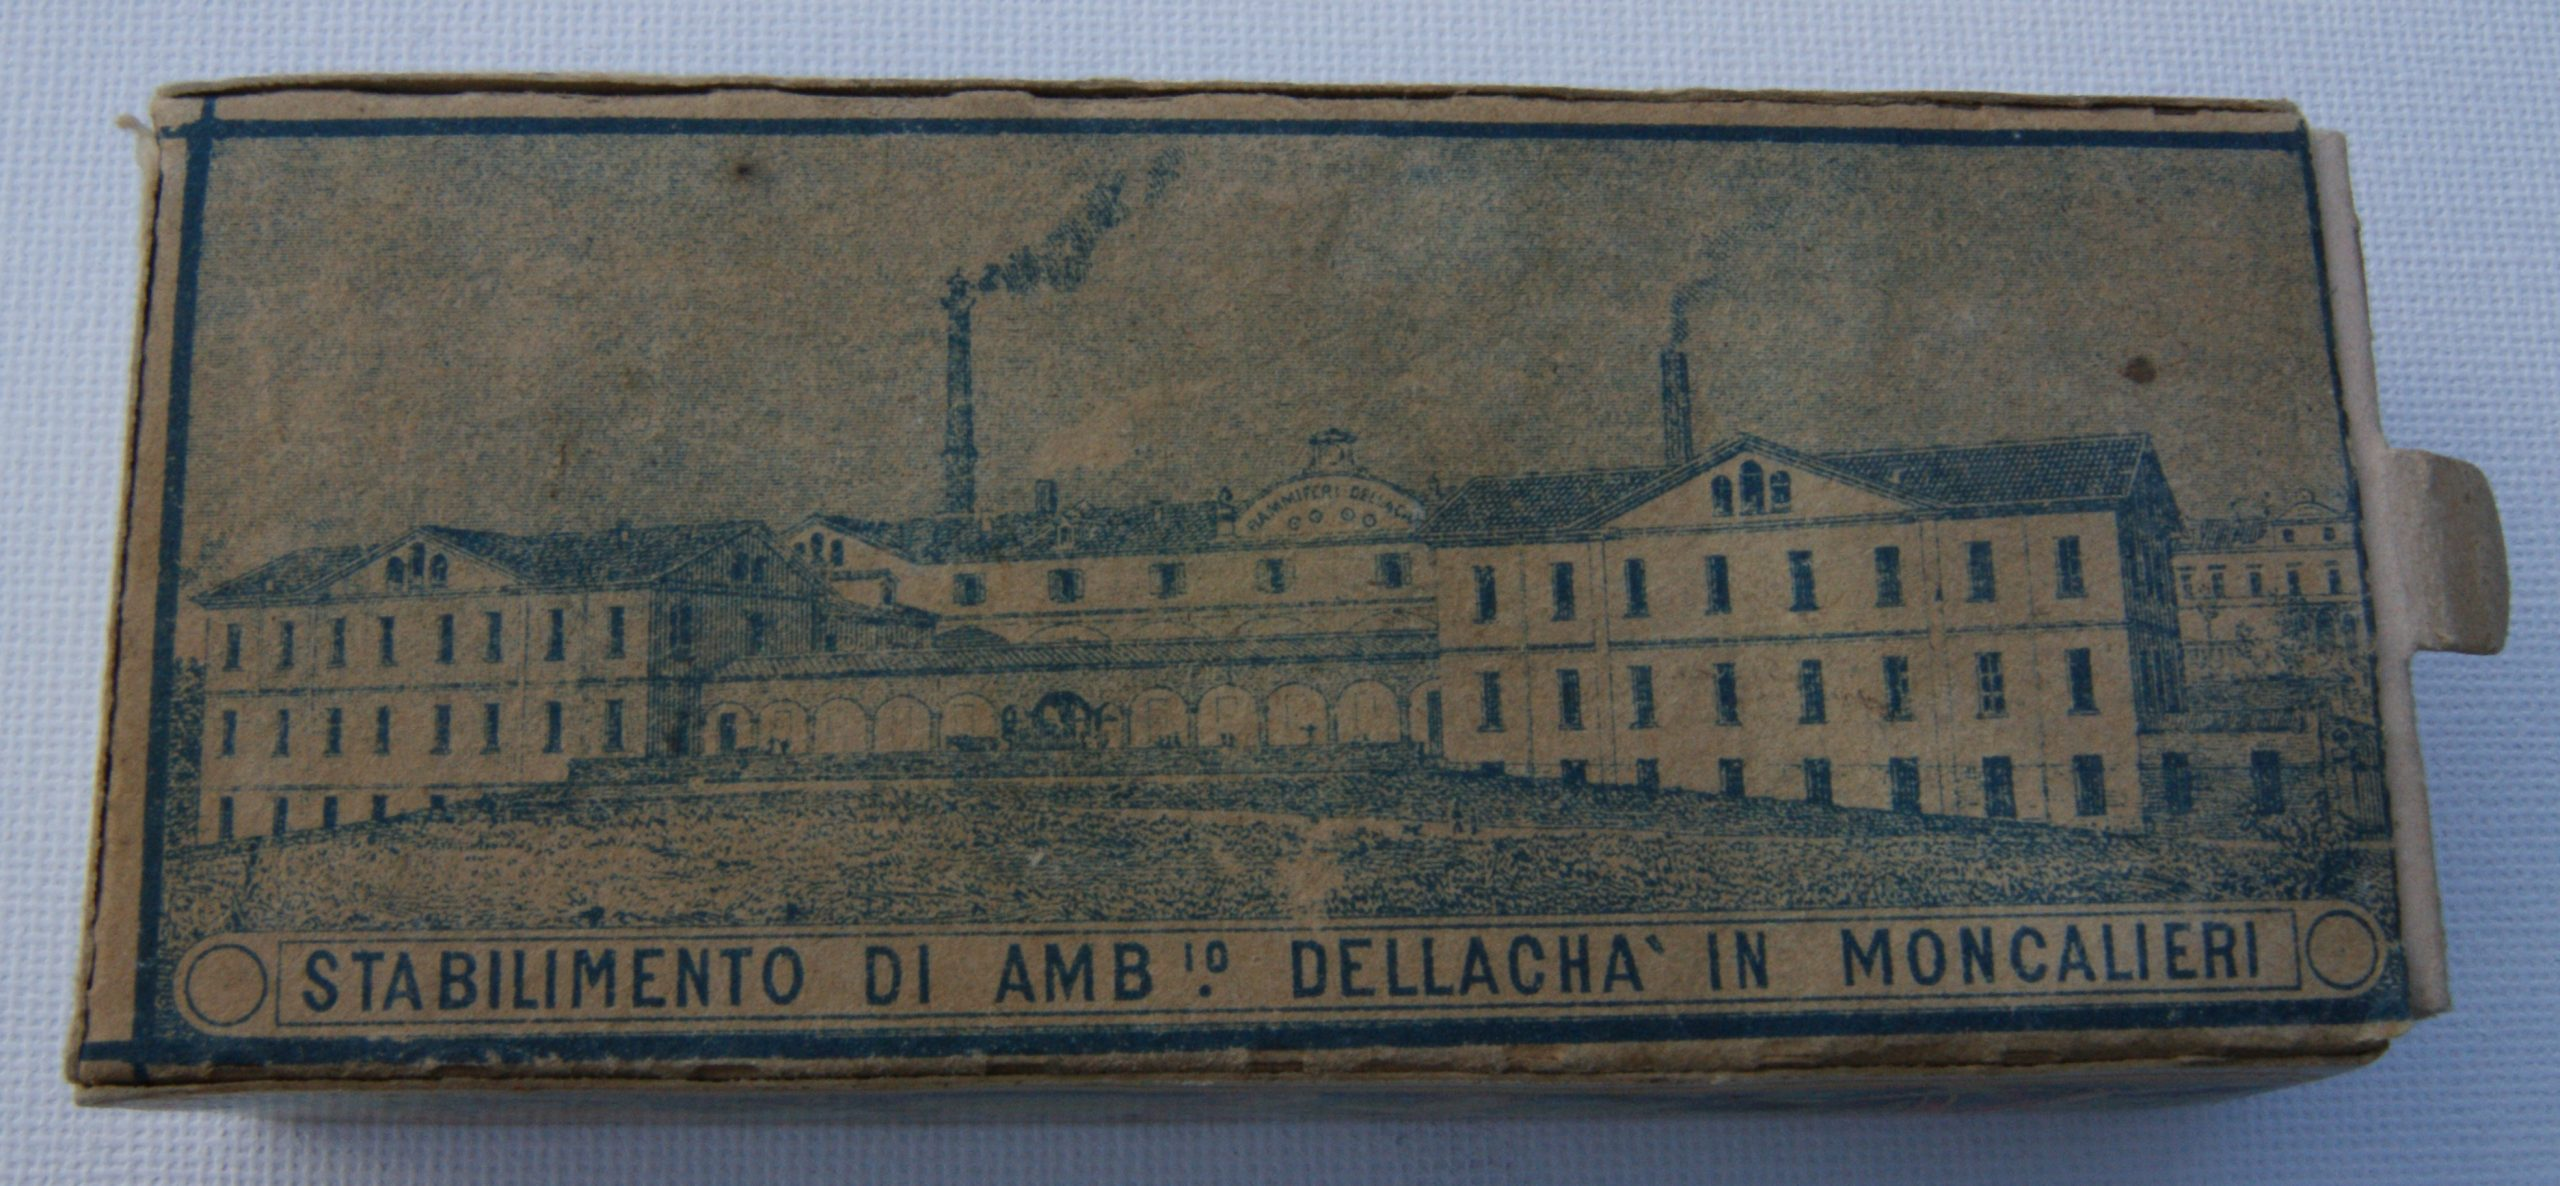 A. Dellacha box (view showing the underside of the matchbox)